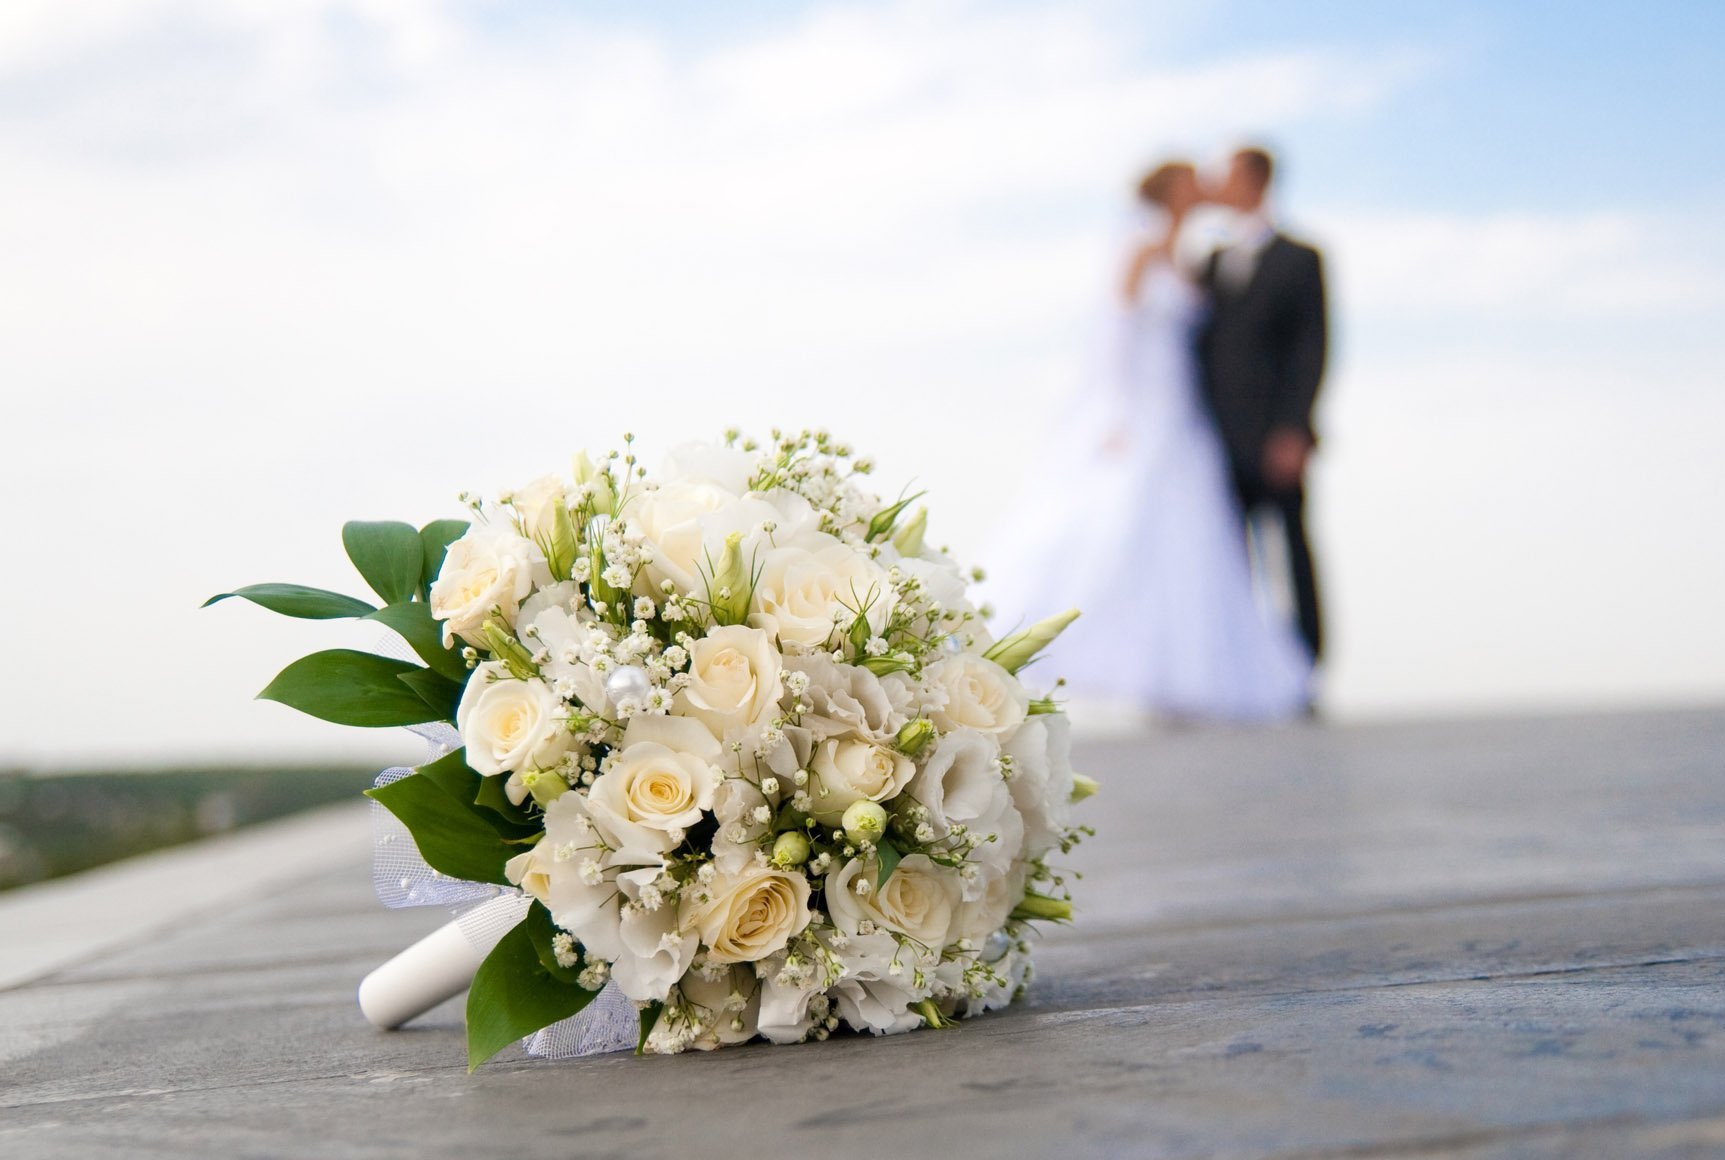 WEDDINGS - OUTFITTERS FOR ALL OF LIFE'S OCCASIONS